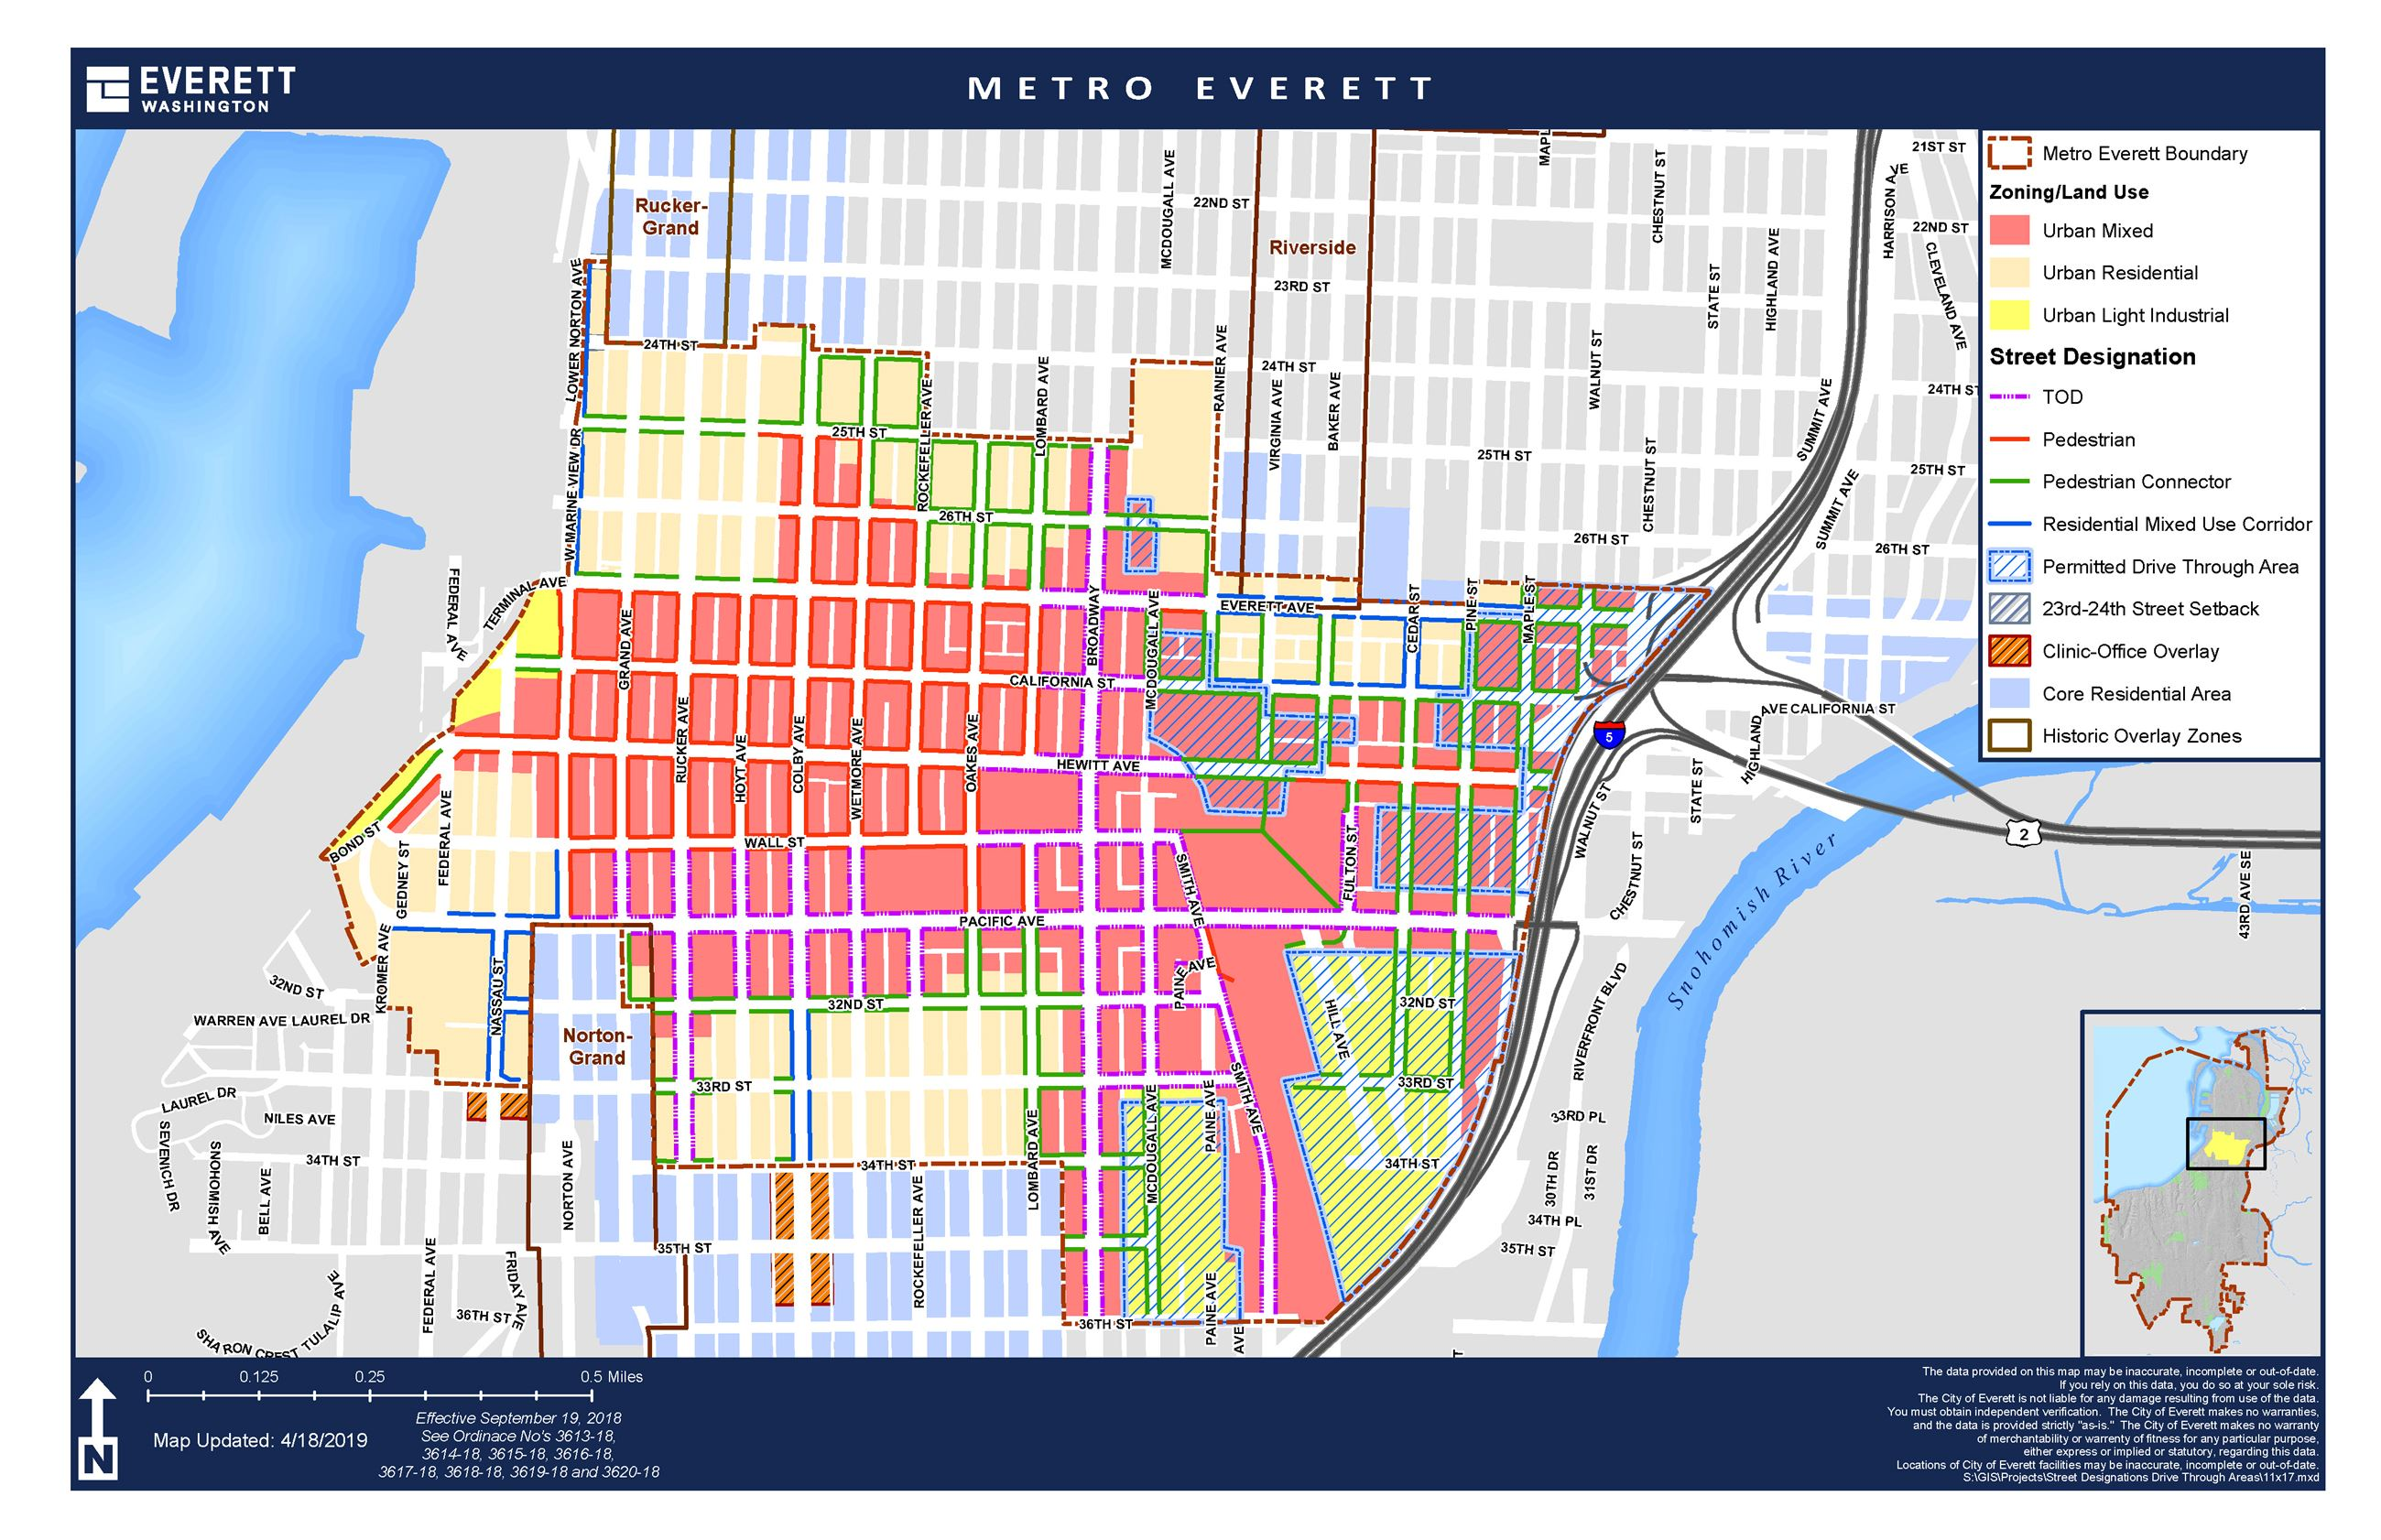 Metro Everett Land Use Street Designations Opens in new window